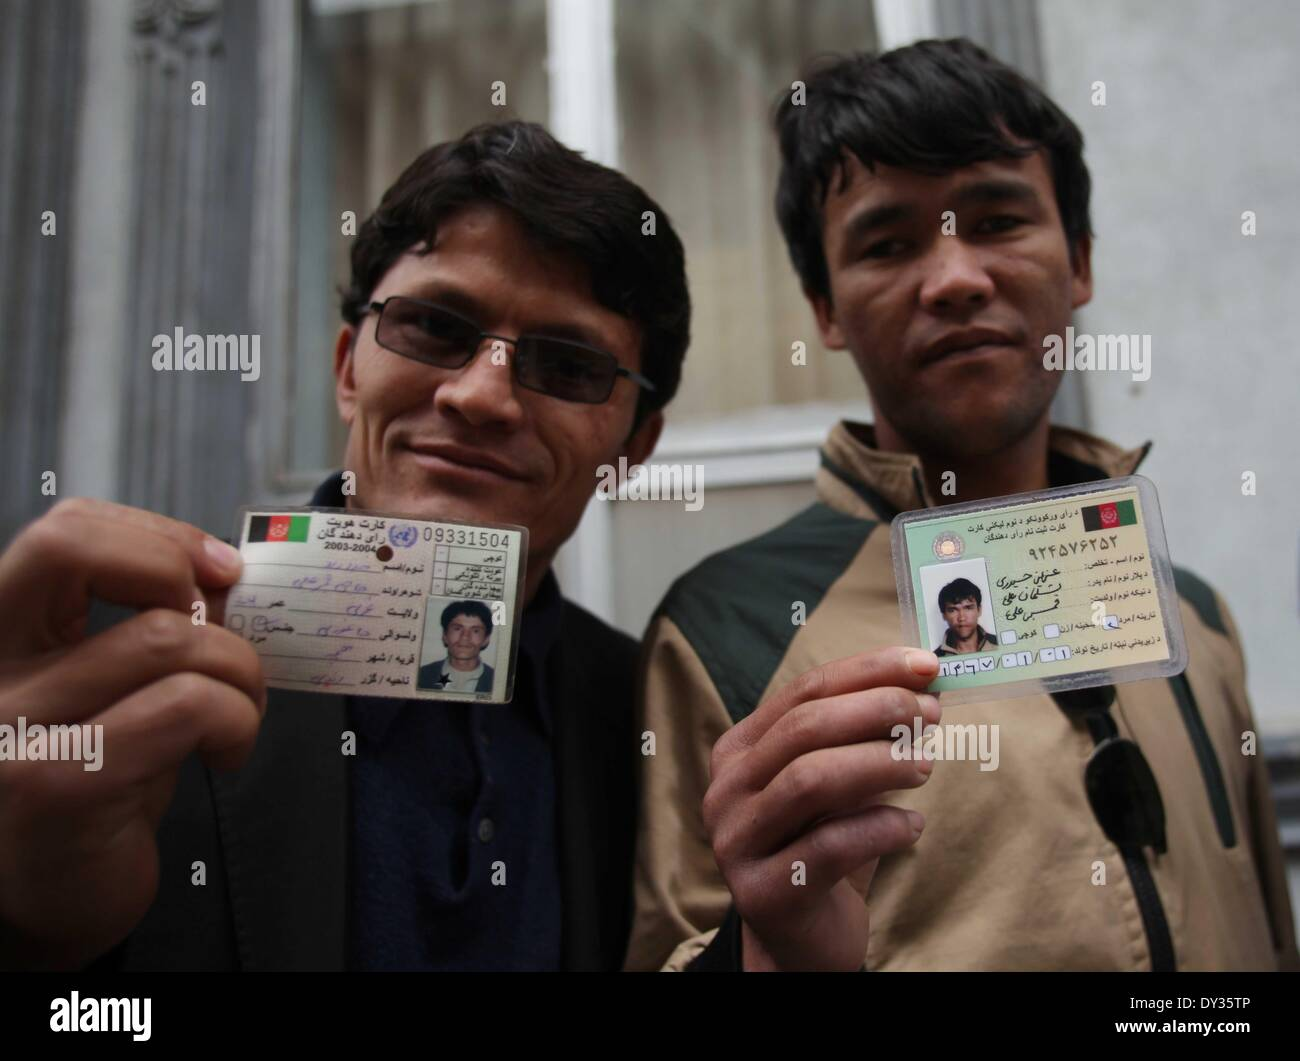 Kabul, Afghanistan. 5th Apr, 2014. Afghan men hold their identity cards while they wait at a polling center in Kabul, Afghanistan on April 5, 2014. Afghani presidential election takes place on Saturday. Credit:  Ahmad Massoud/Xinhua/Alamy Live News - Stock Image